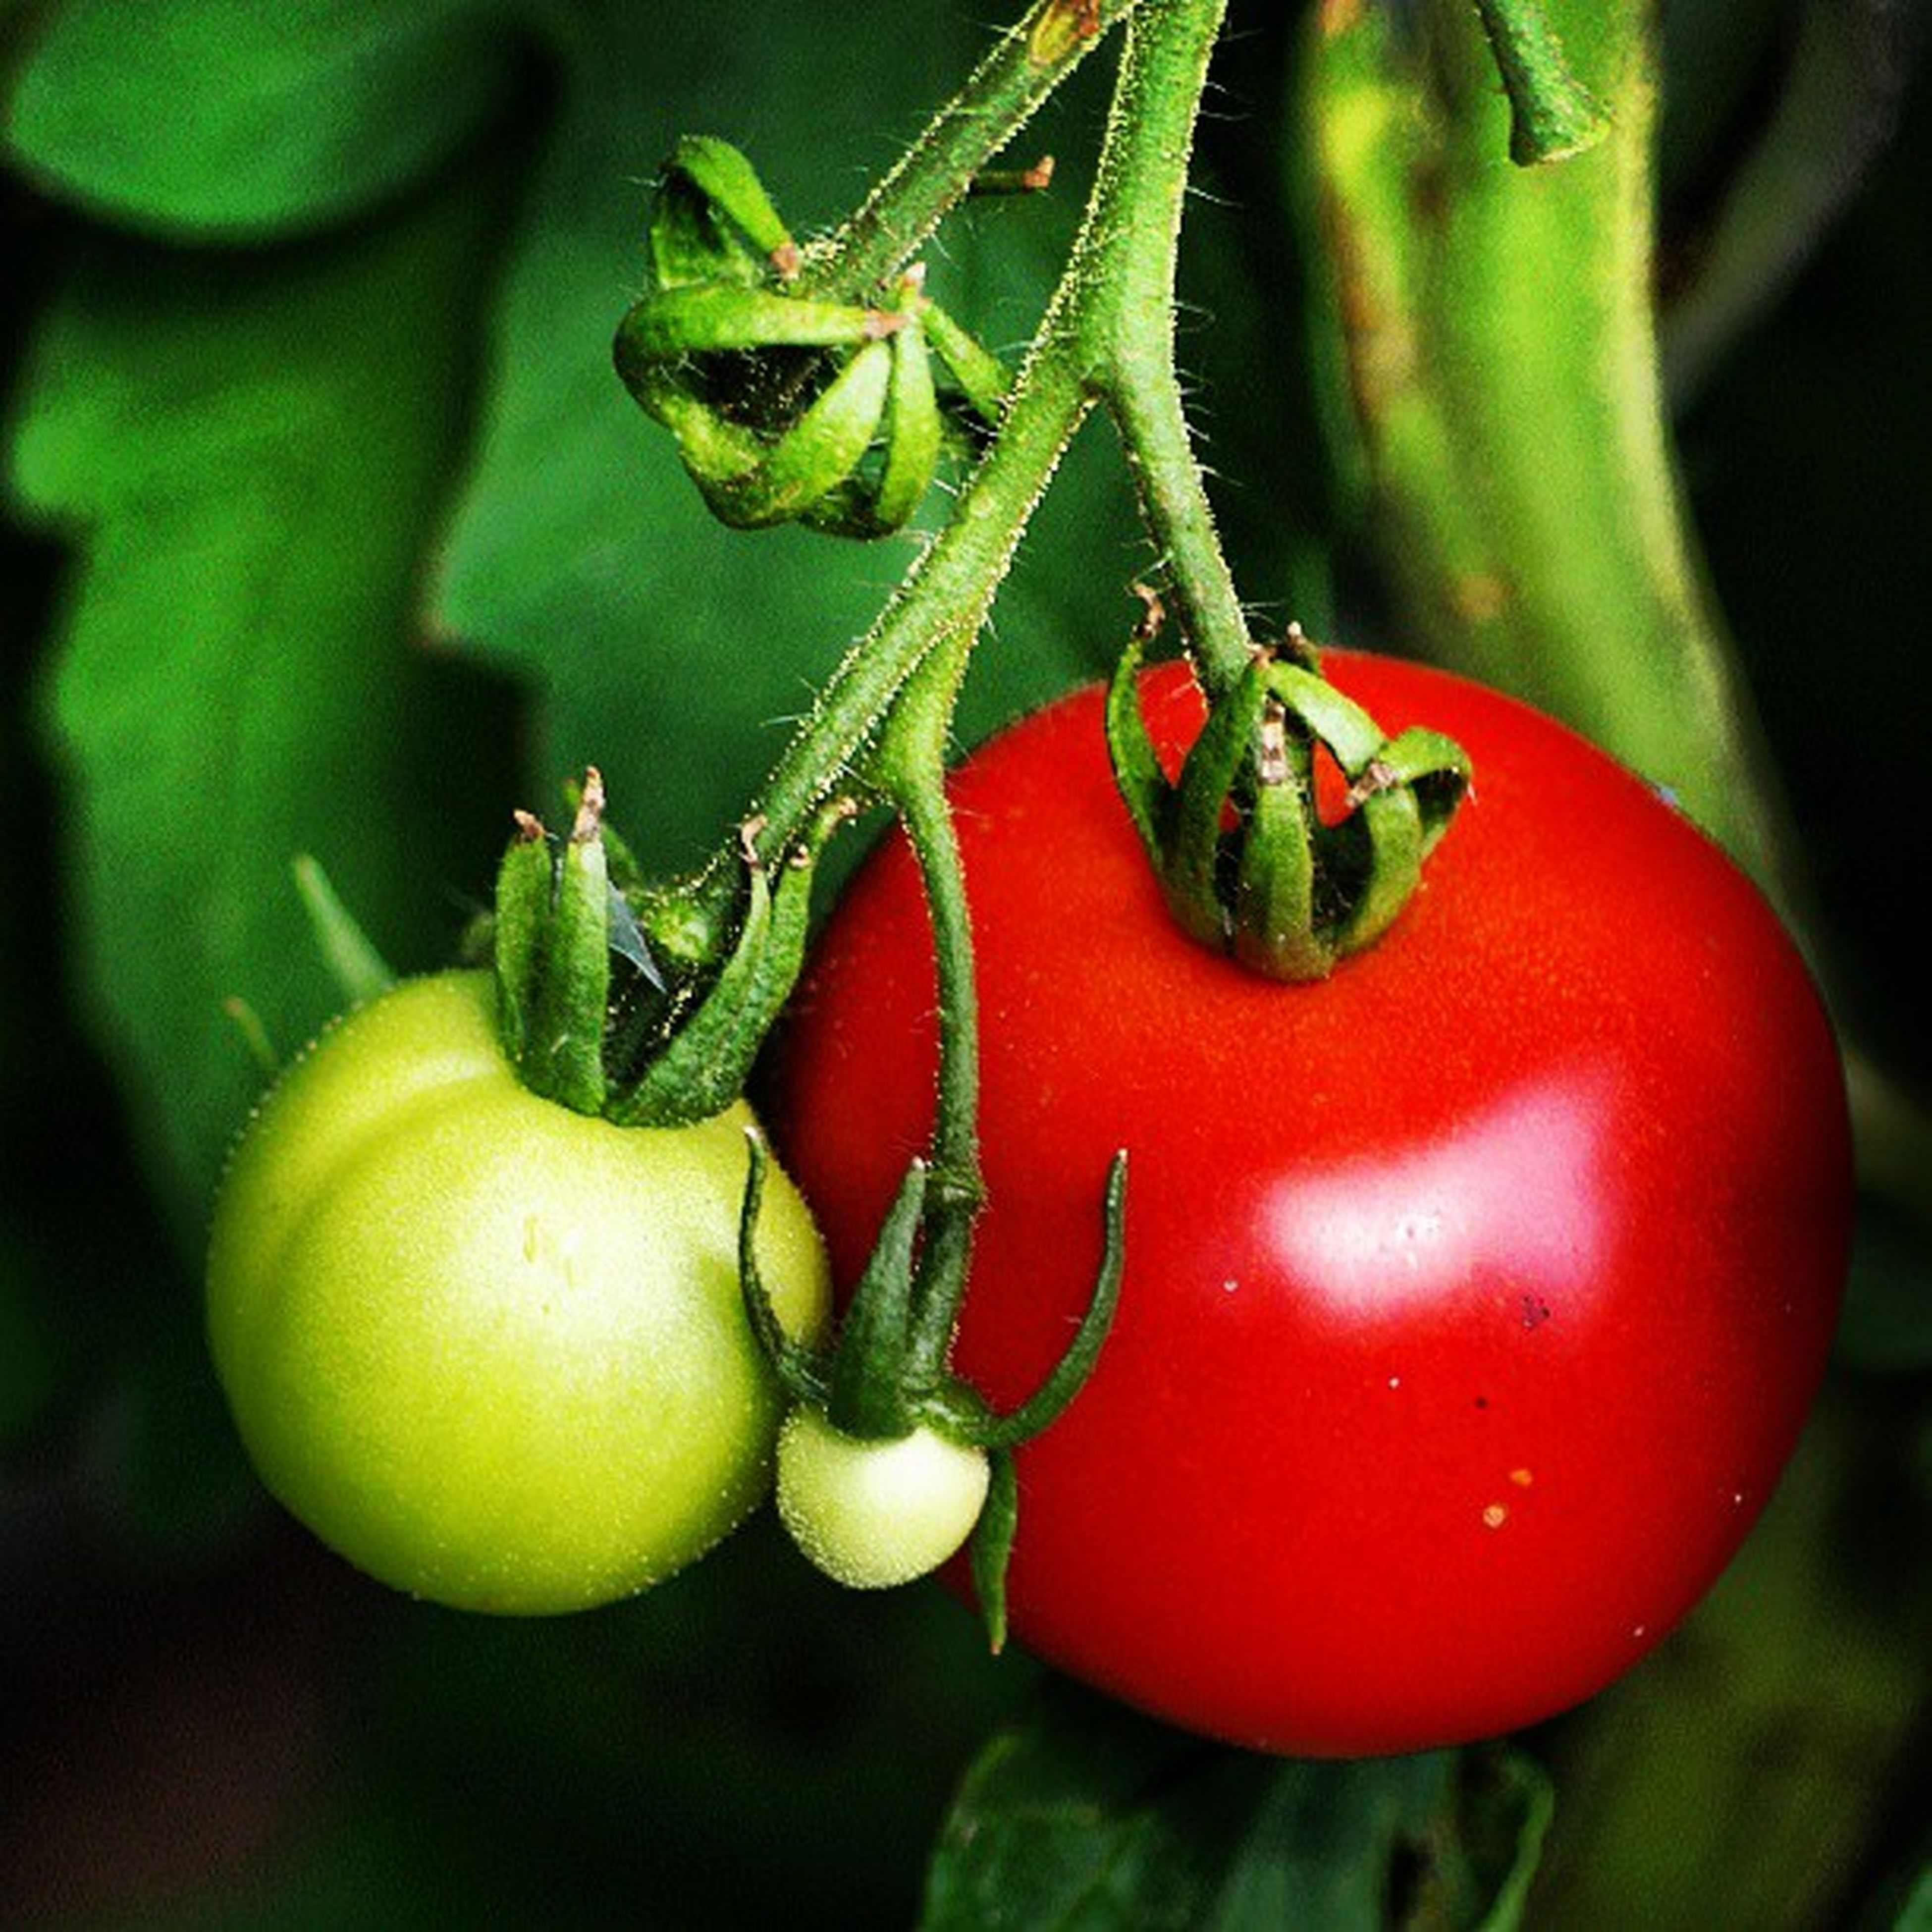 red, food and drink, healthy eating, food, tomato, freshness, vegetable, close-up, fruit, green color, focus on foreground, organic, leaf, selective focus, stem, no people, growth, ripe, raw food, nature